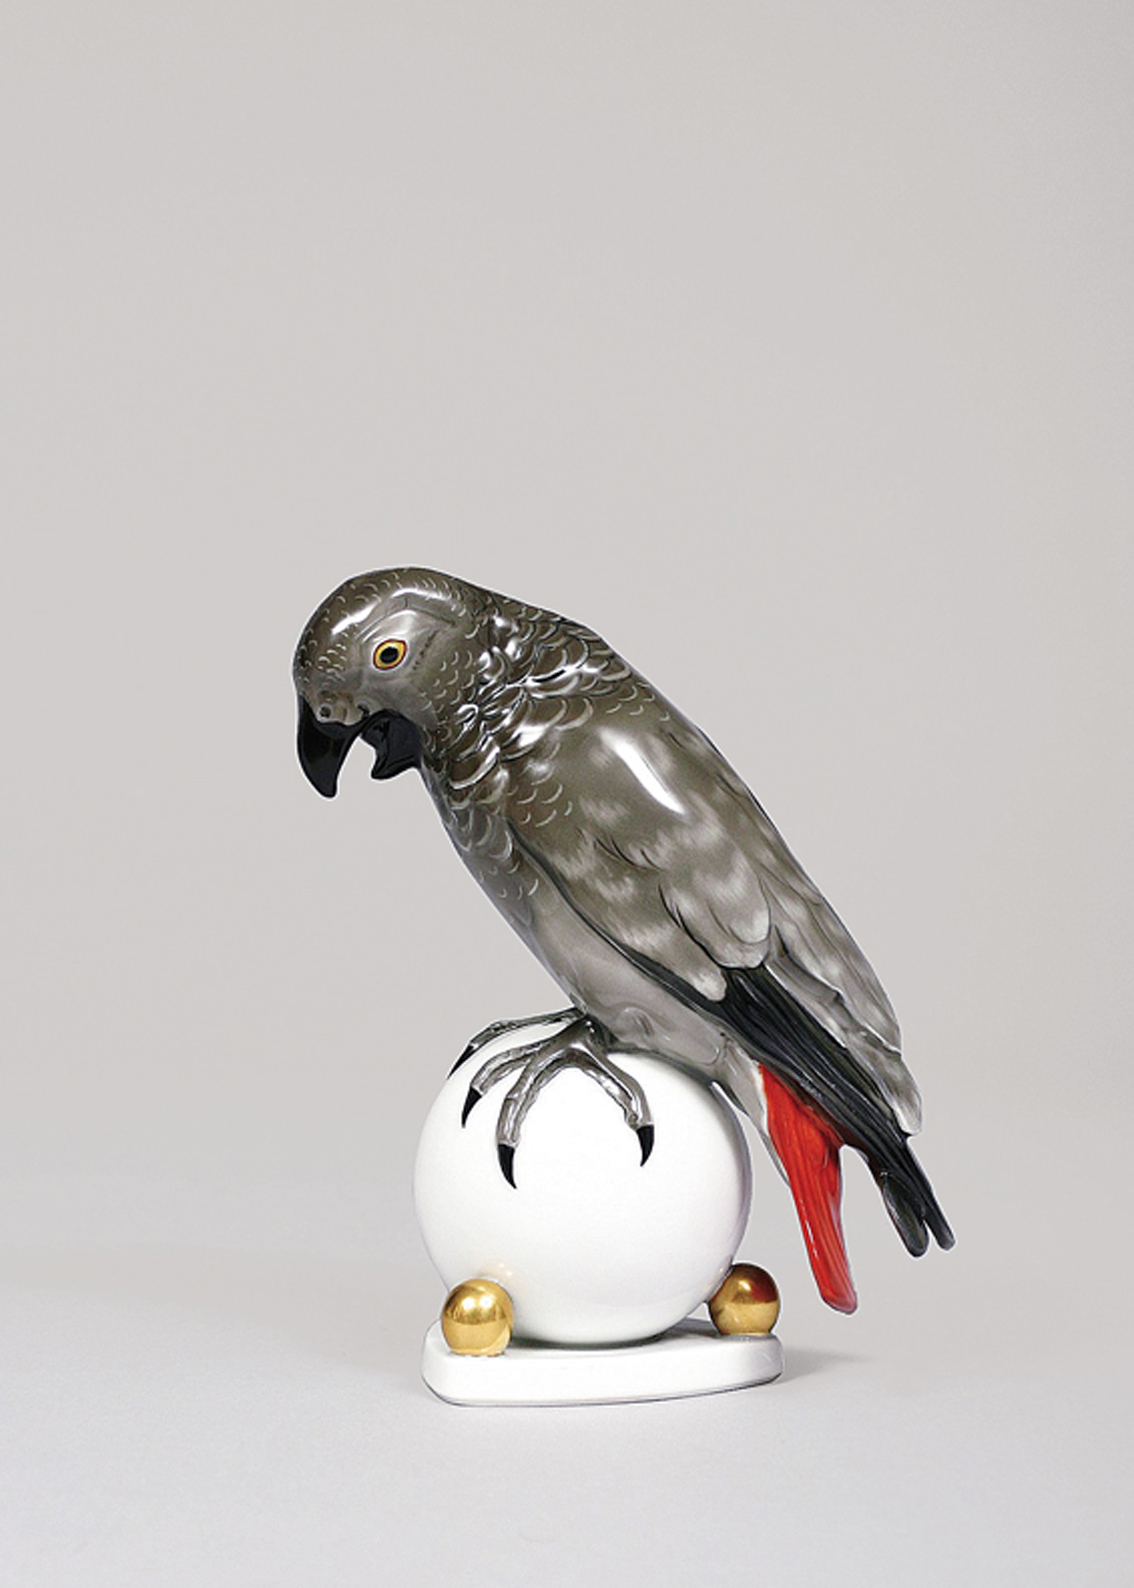 An animal figure of a grey parrot seated on a ball